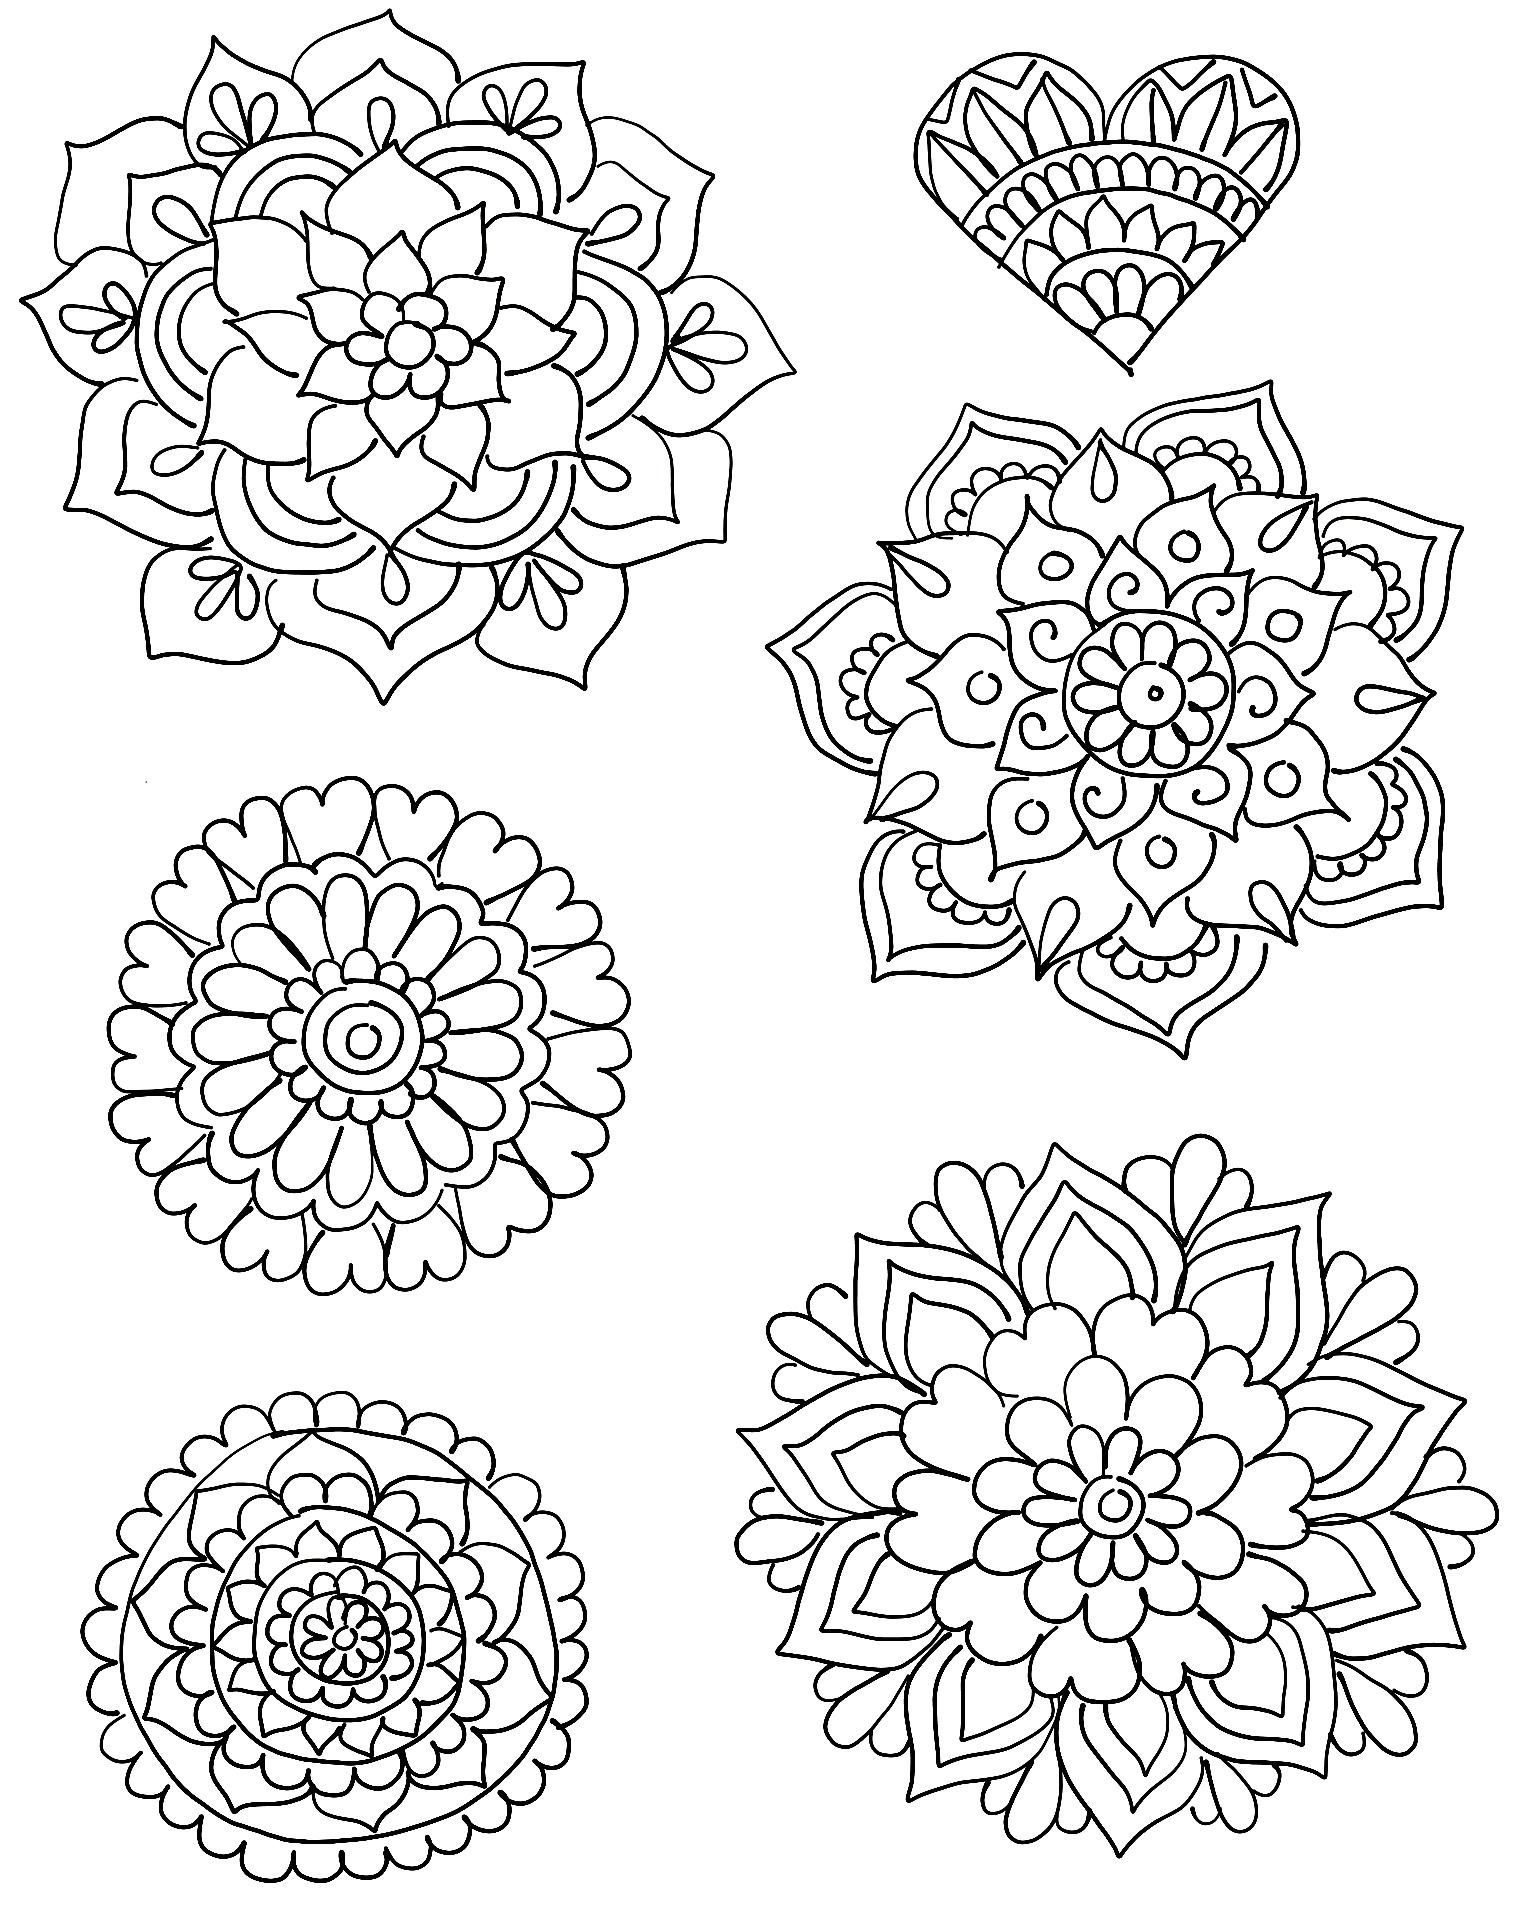 diy shrinky dink charms shrinky dinks mandala and template With shrinky dink printable templates